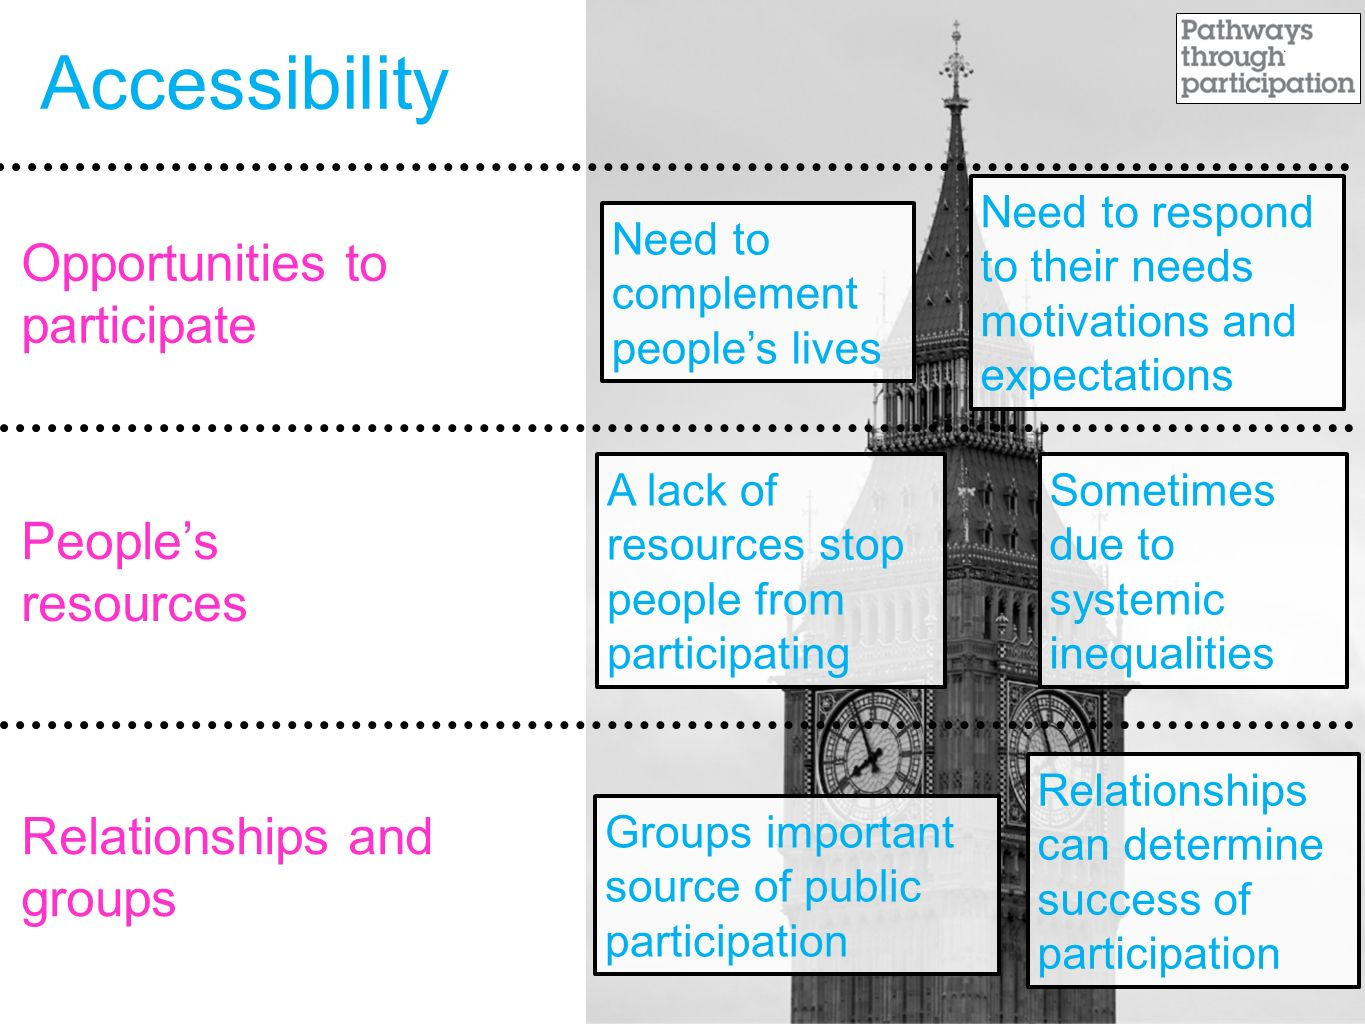 Accessibility Opportunities to participate People's resources Relationships and groups Need to complement people's lives Need to respond to their needs motivations and expectations A lack of resources stop people from participating Sometimes due to systemic inequalities Groups important source of public participation Relationships can determine success of participation